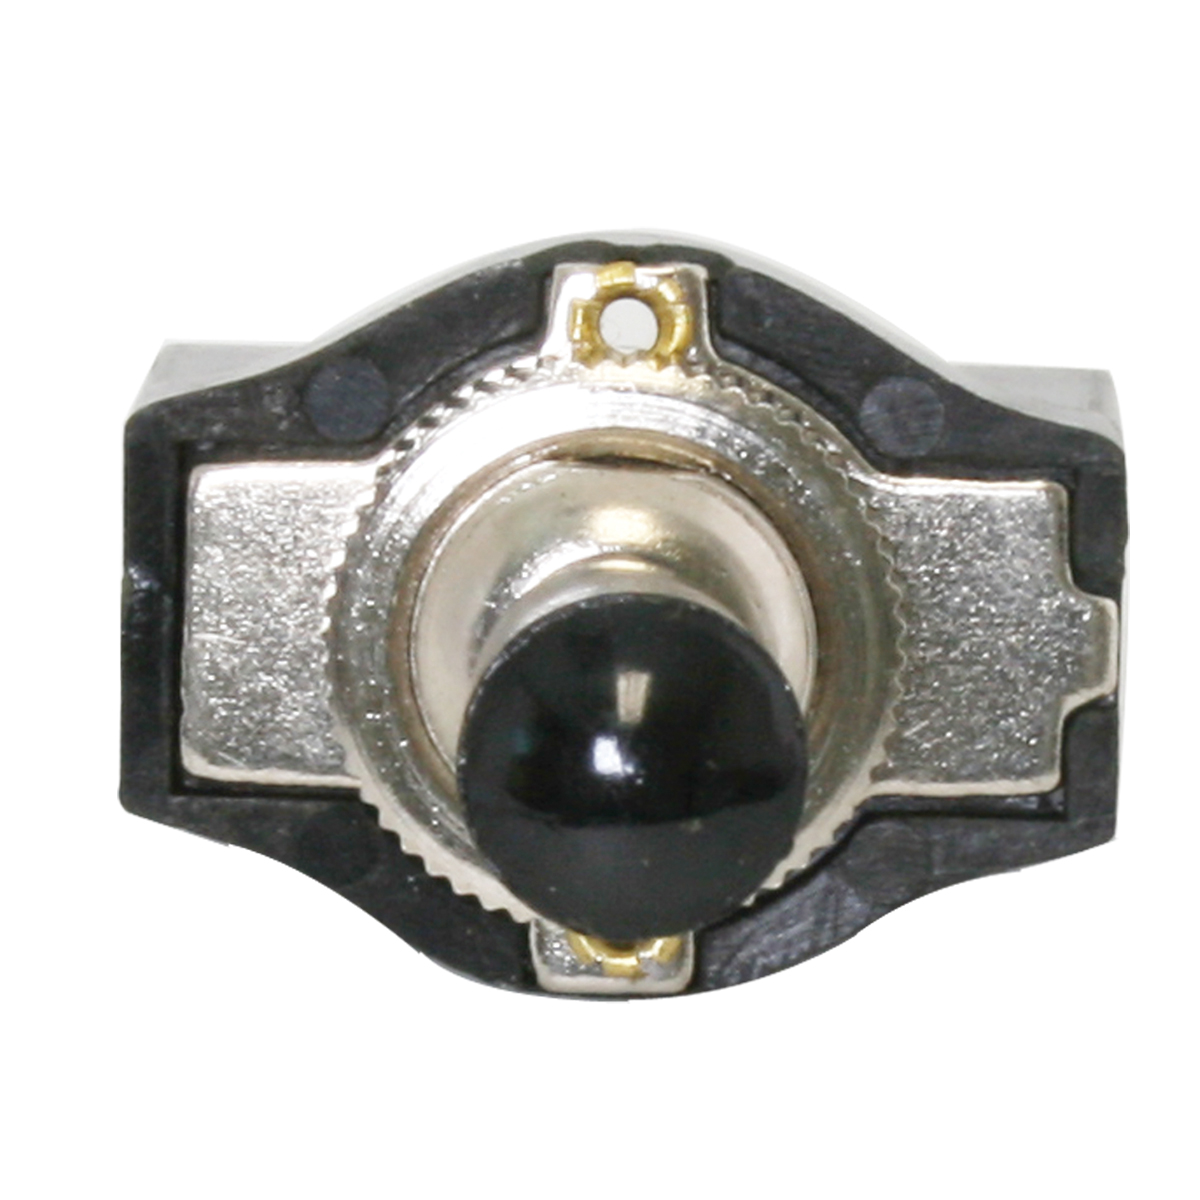 67980 Metal Toggle Switch with Black Plastic Cover